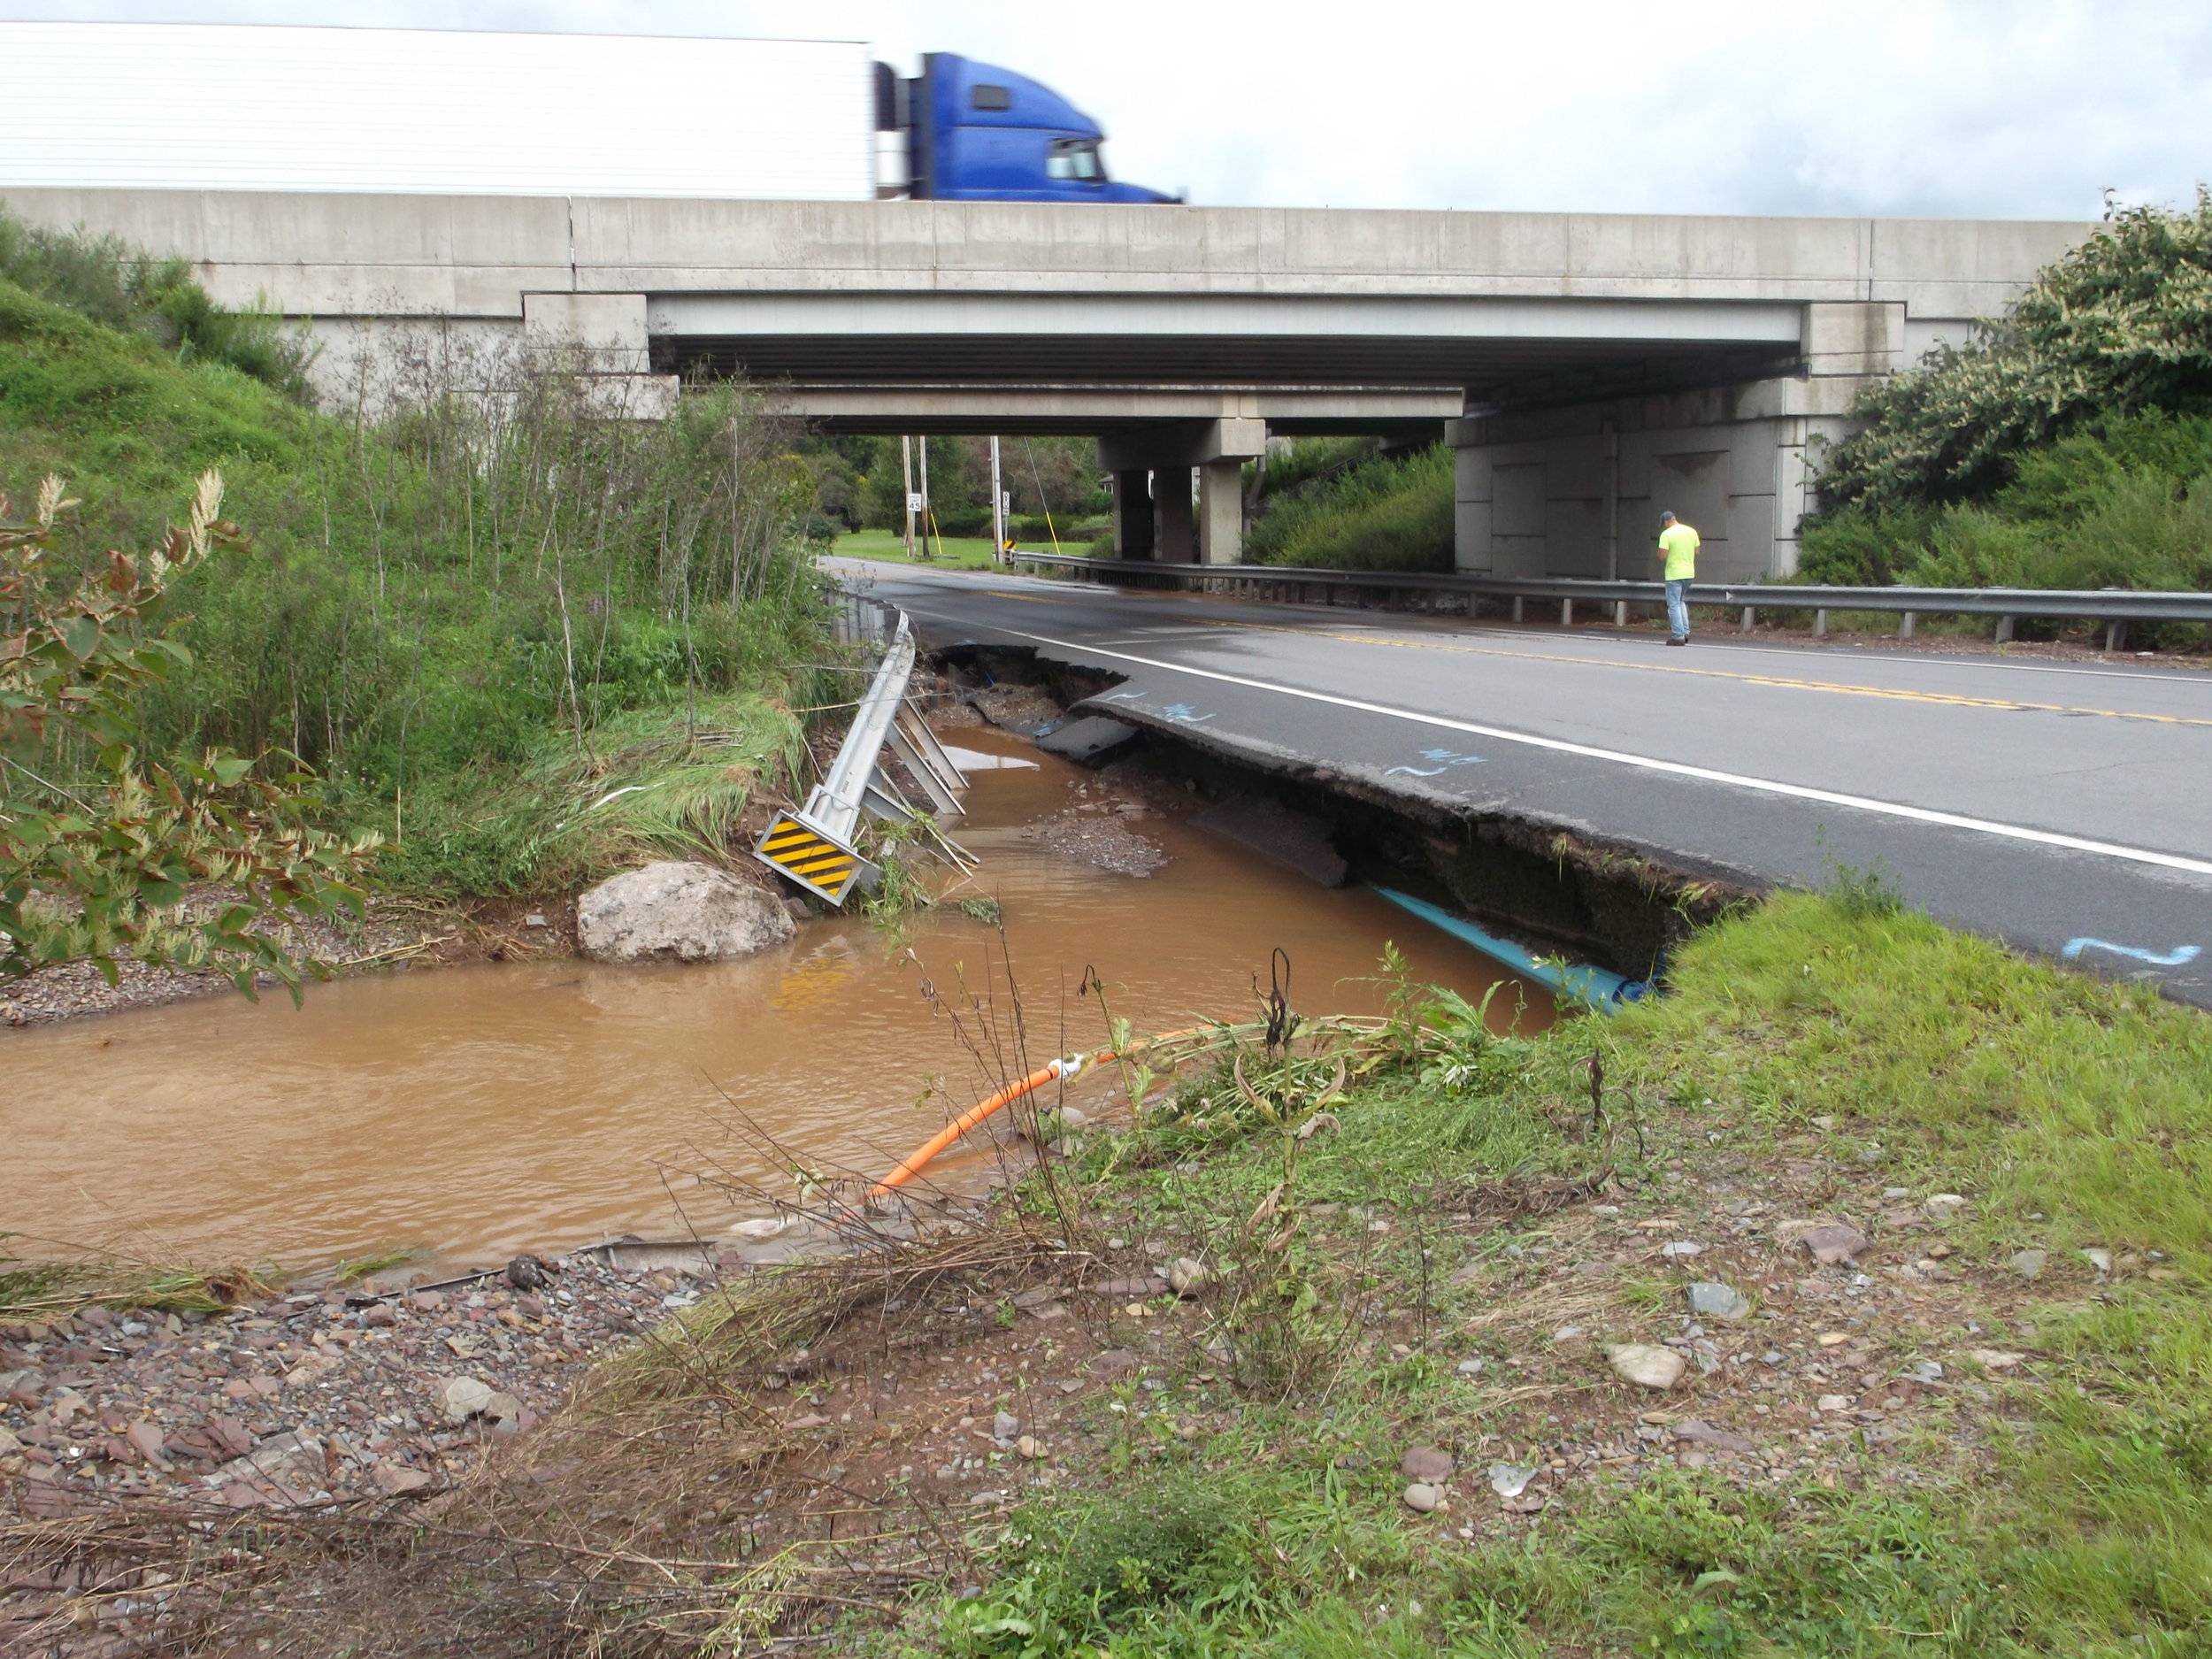 Road bed washed out along Millville Road in Bloomsburg, near I-80